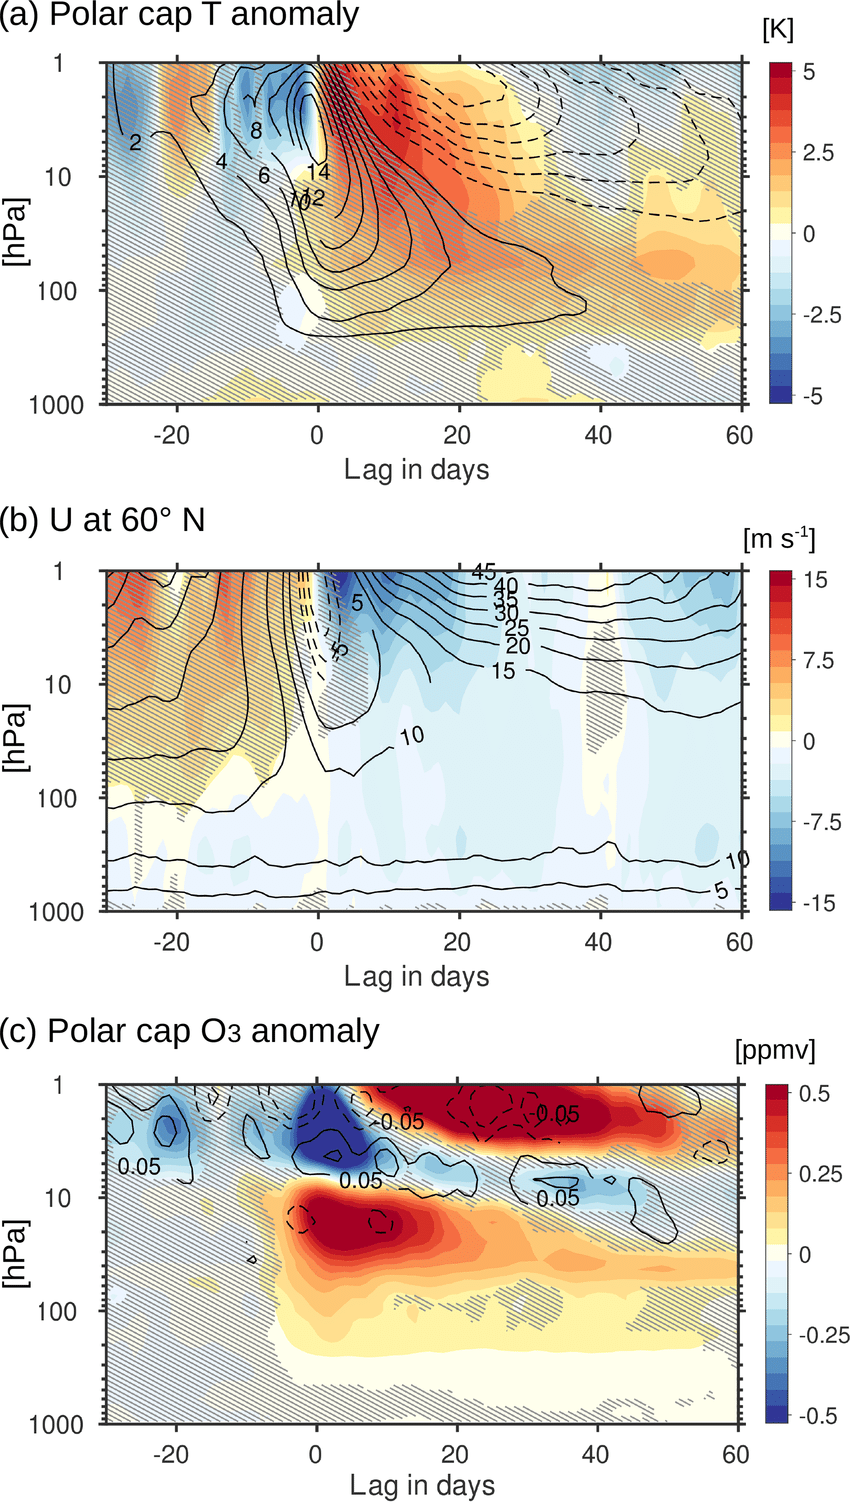 medium resolution of ssw composites for a the polar cap 60 to 90 n